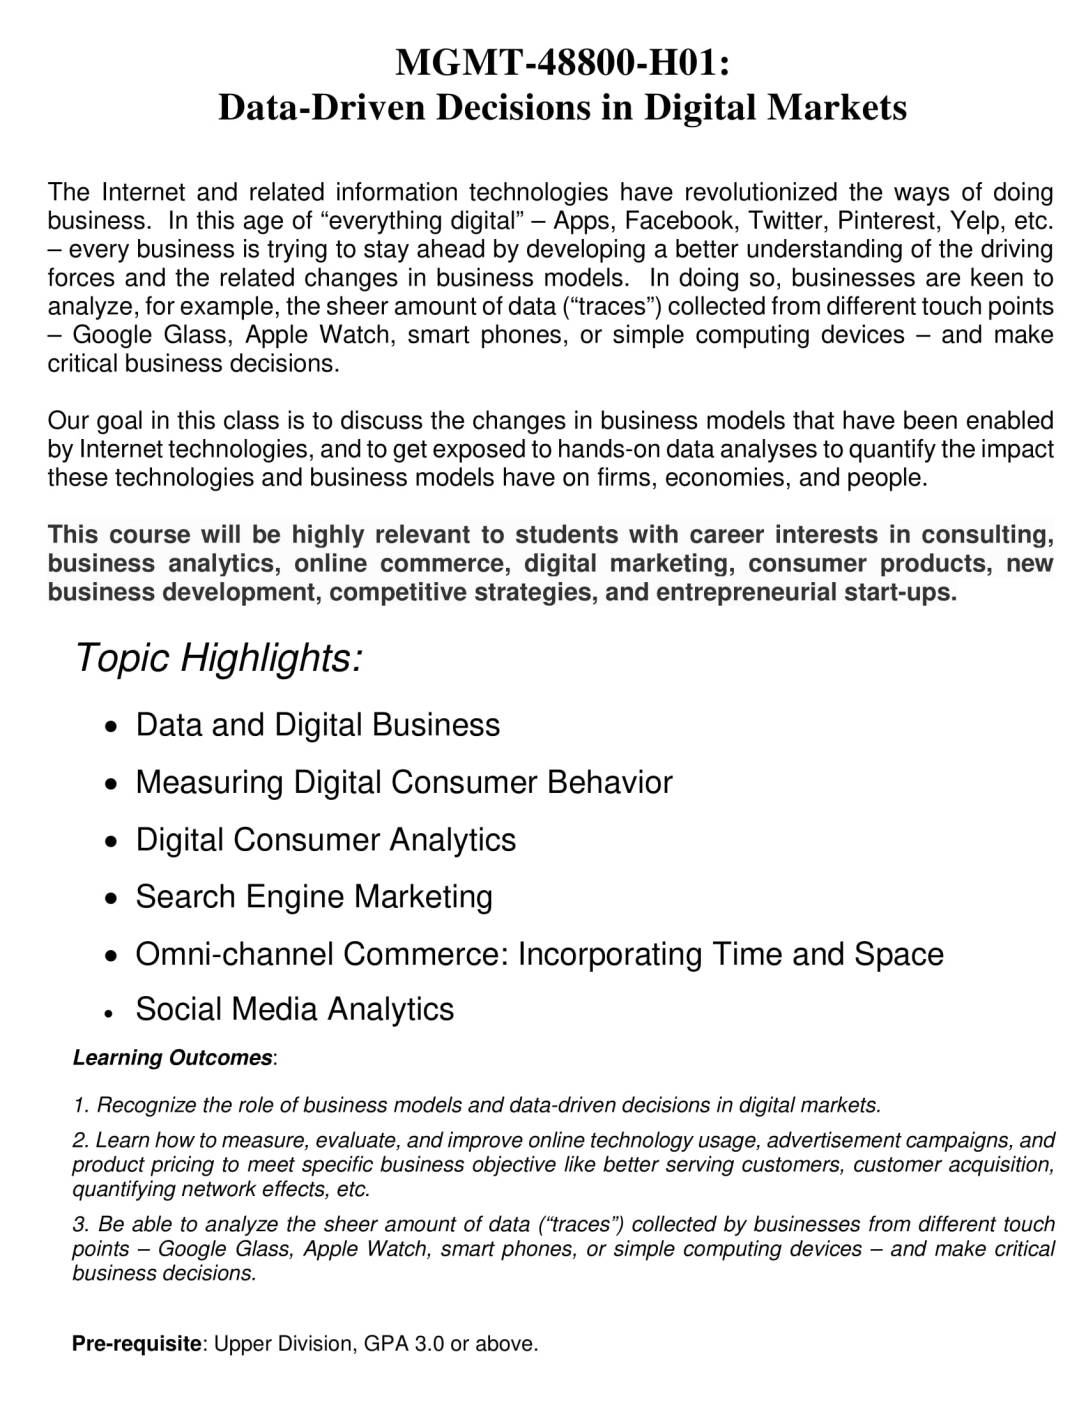 MGMT 488 H Course Flyer-1